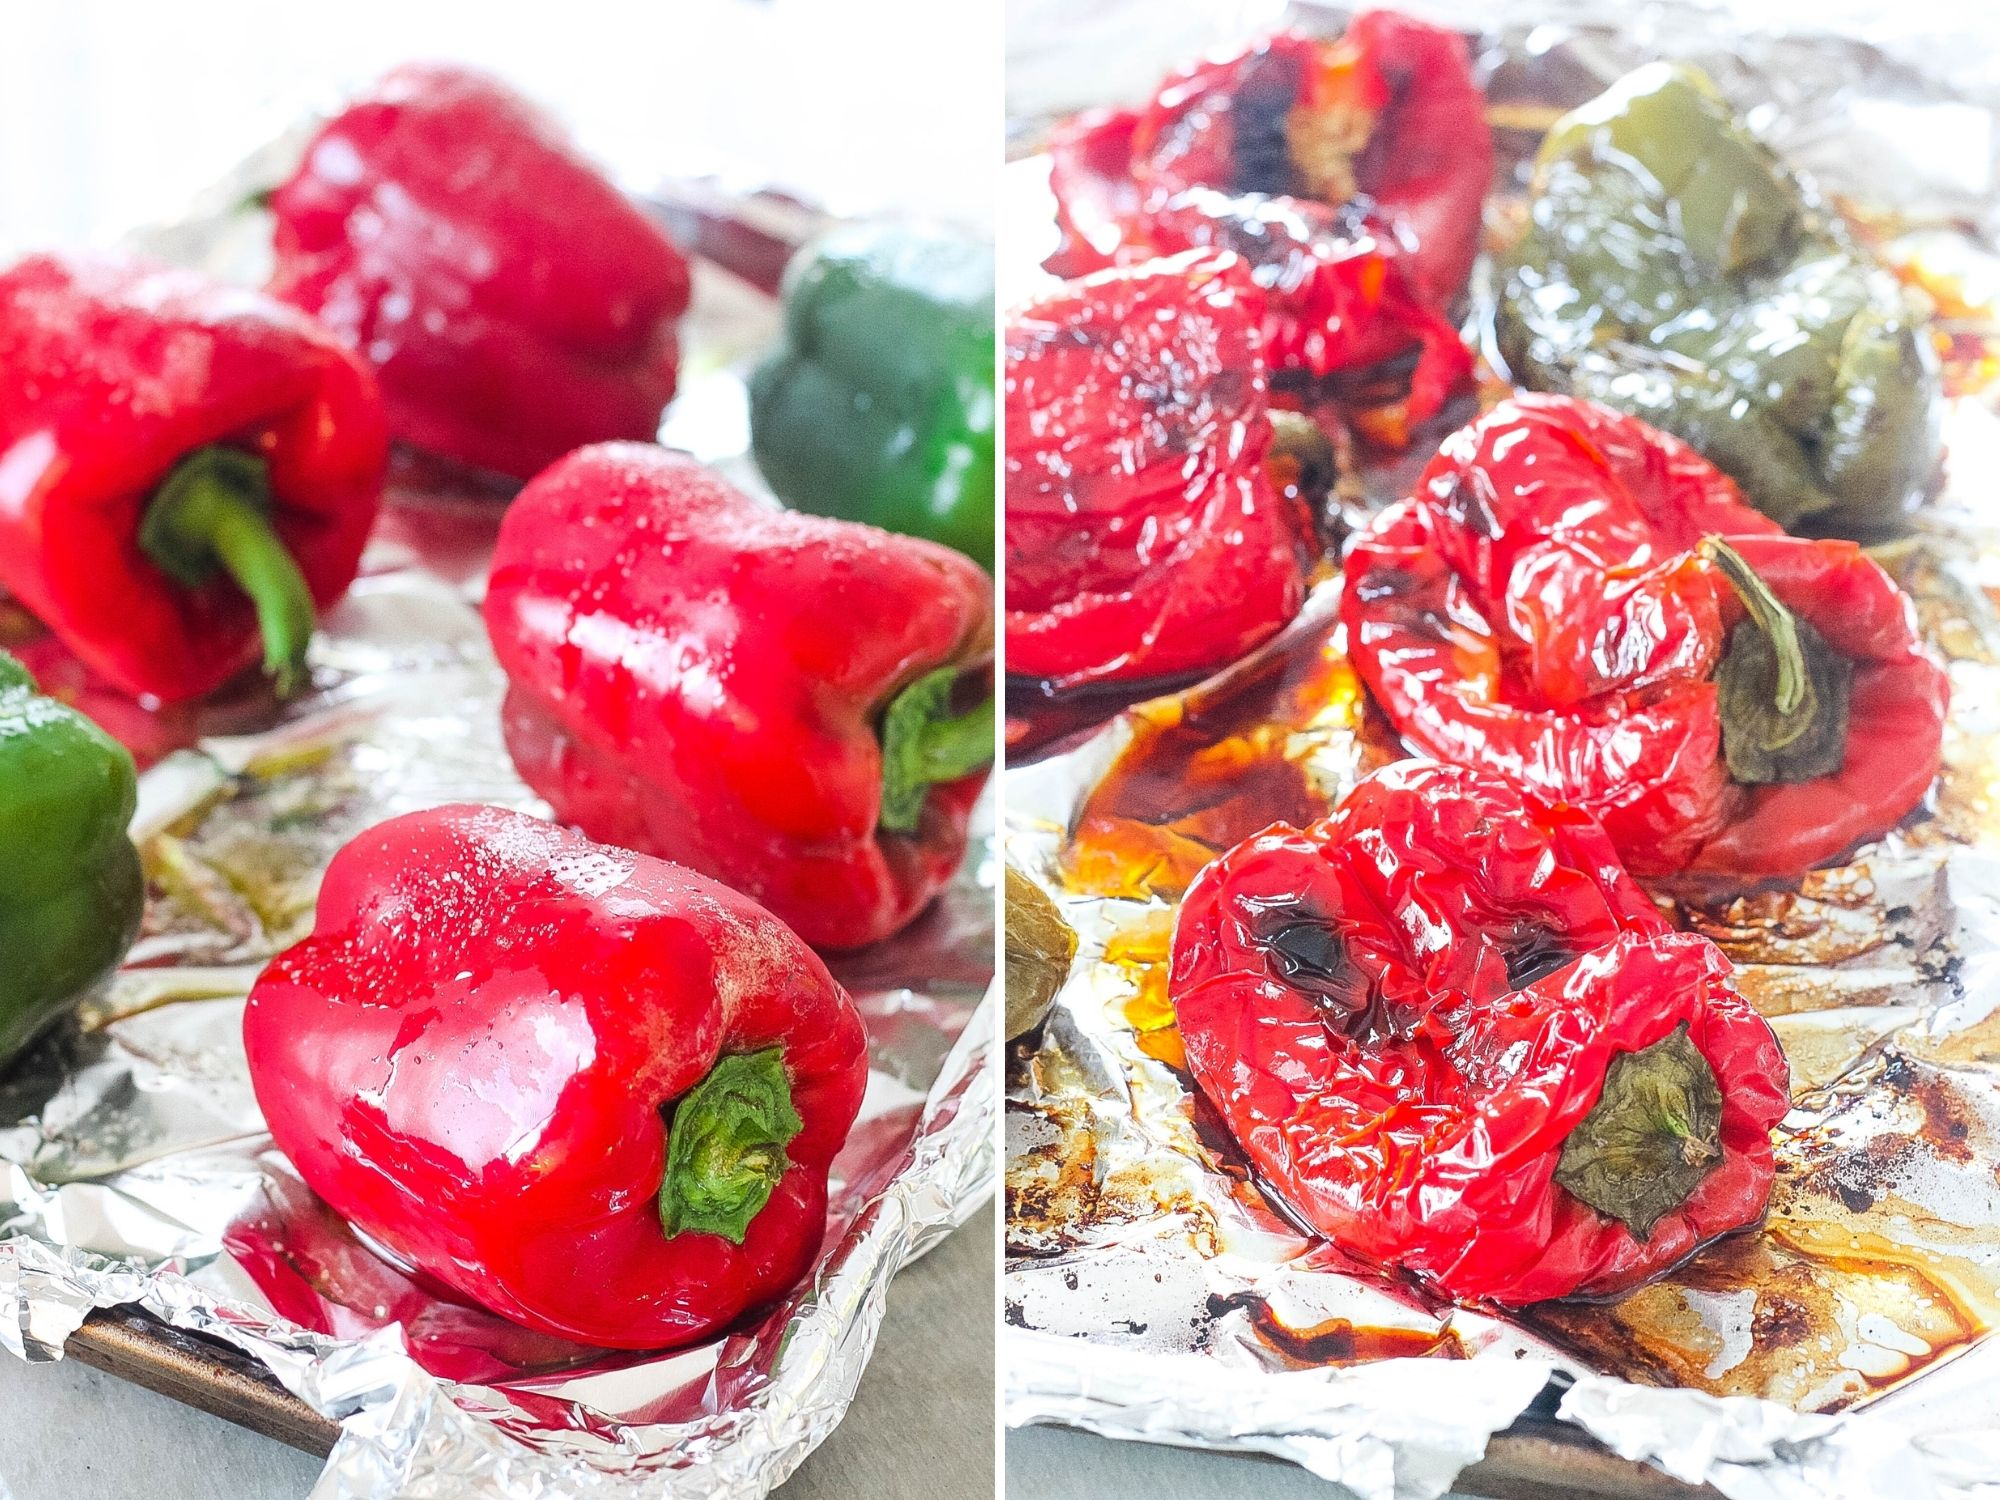 roasted bell peppers before and after